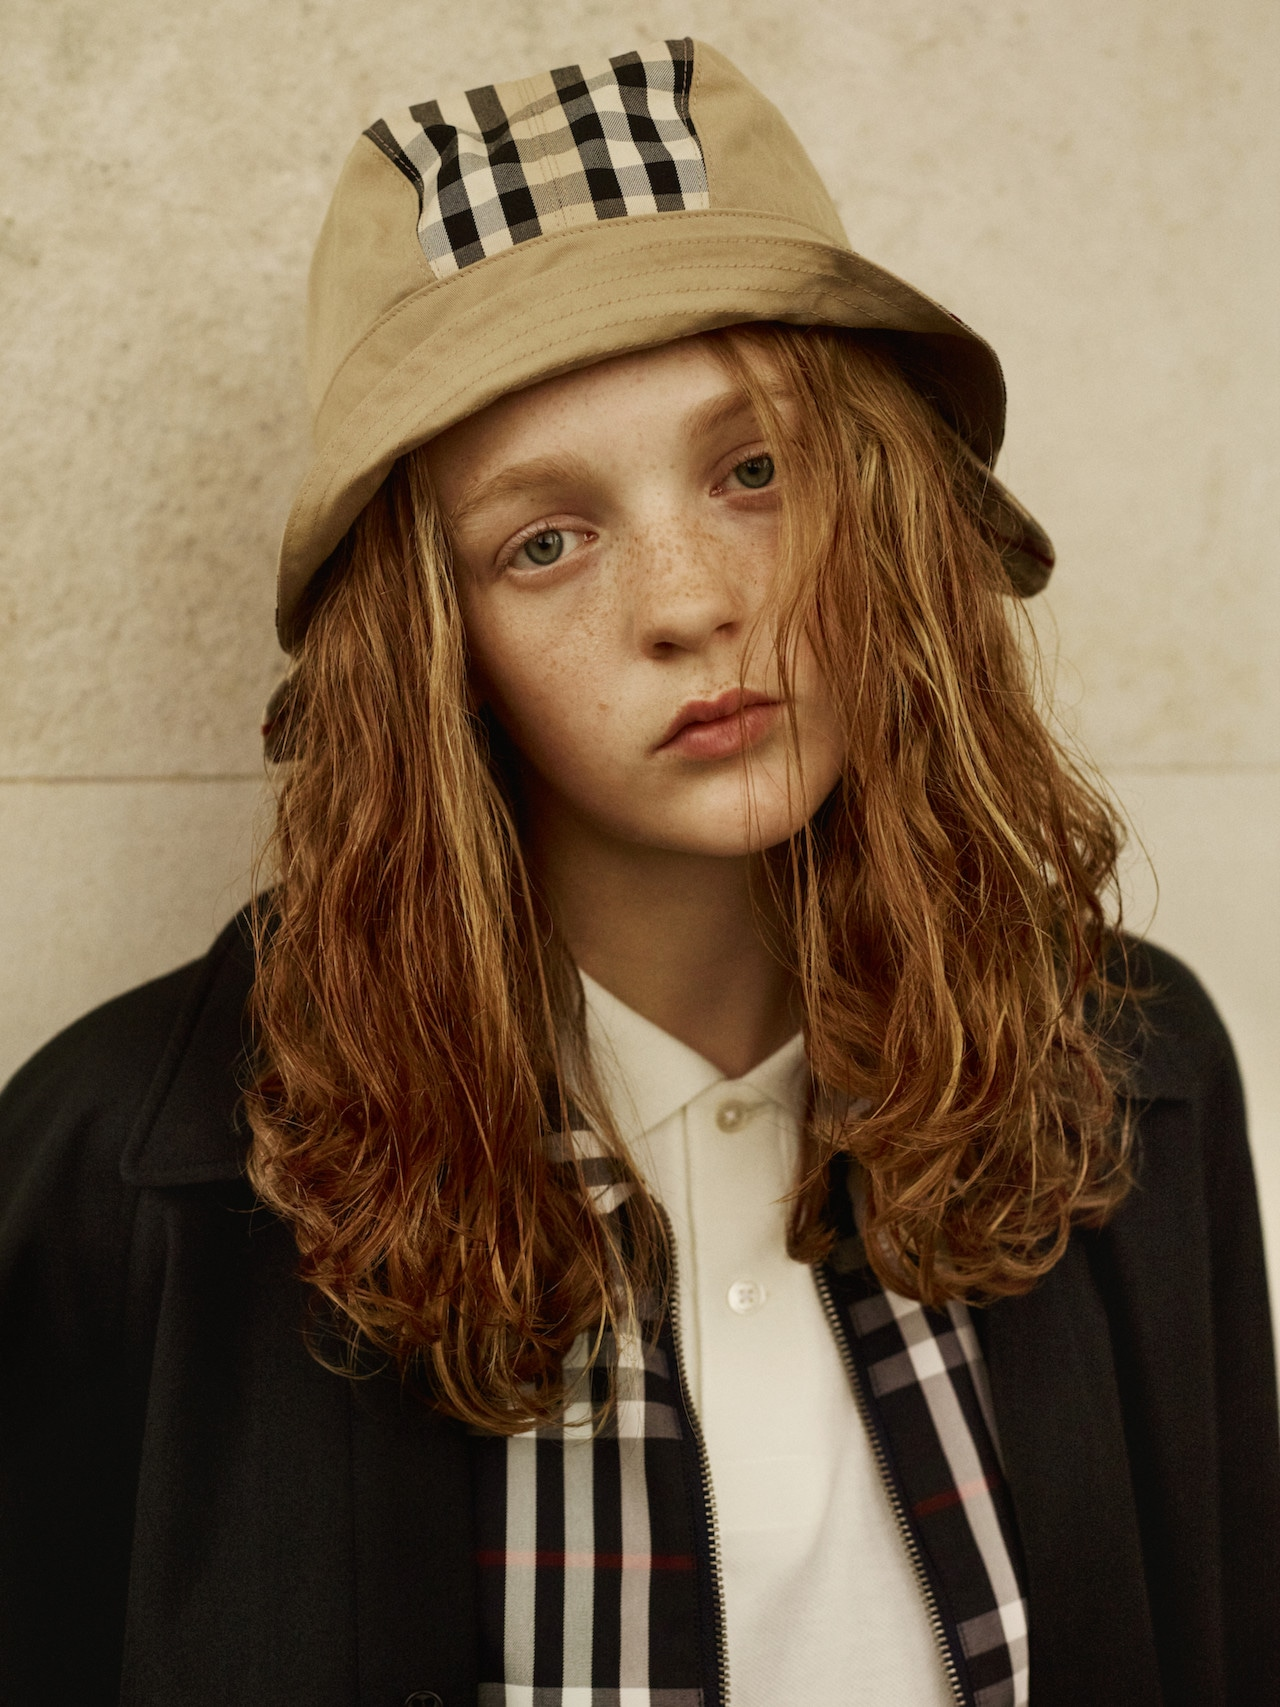 Burberry's Gosha Rubchinskiy capsule collection is almost here